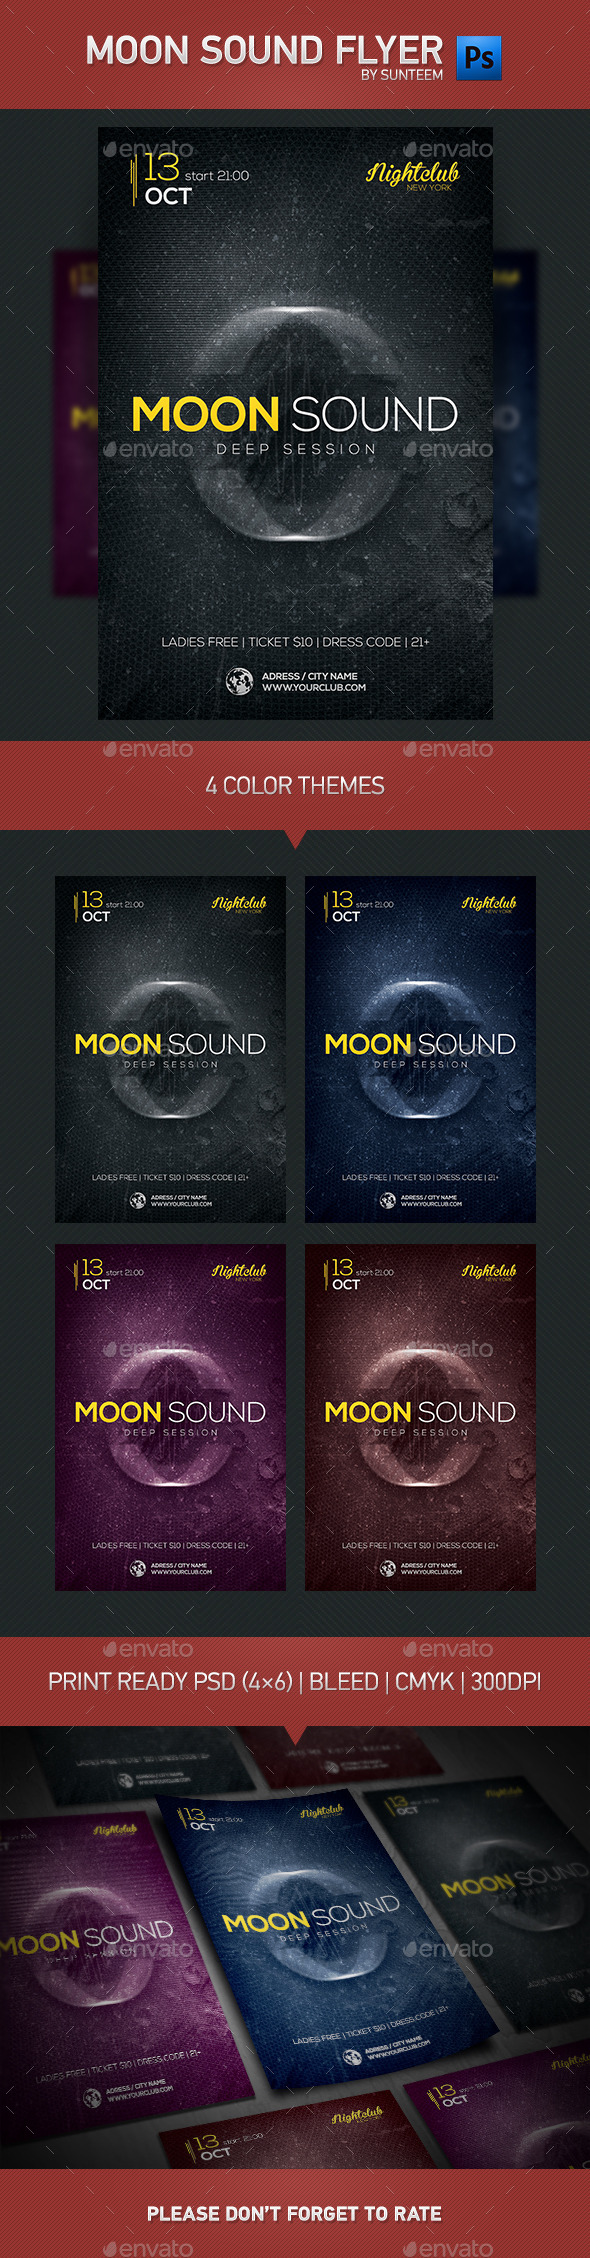 GraphicRiver Moon Sound Flyer Template 8875743